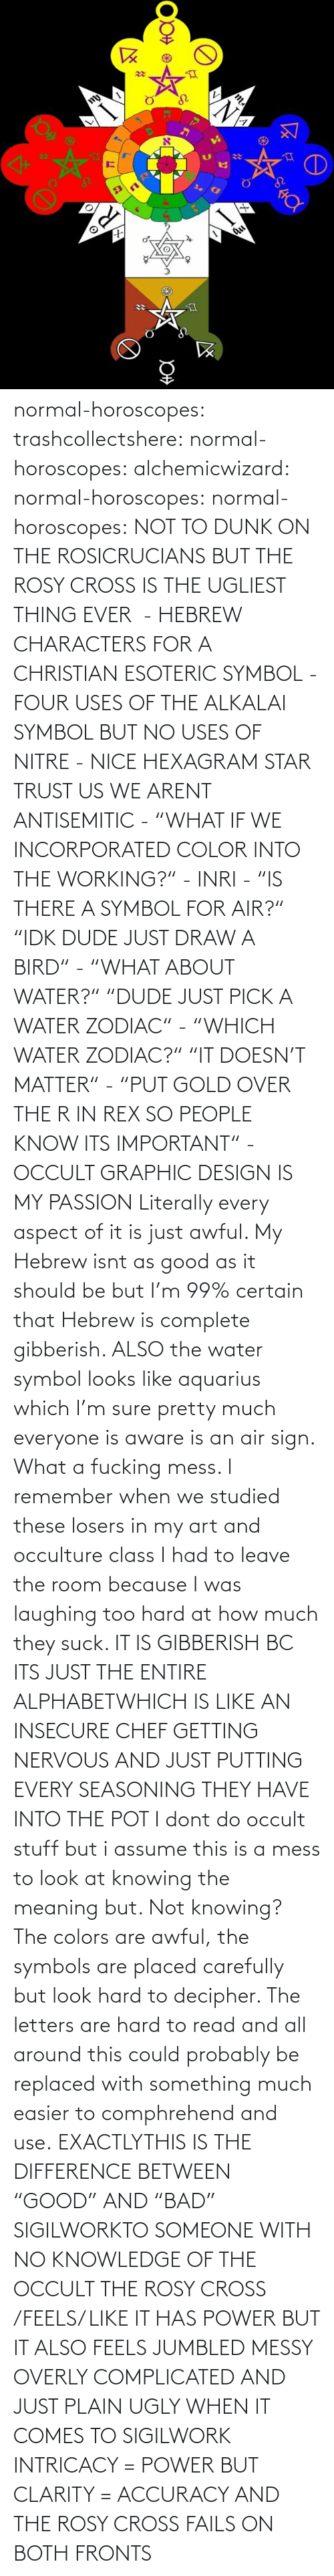 "Its Just: normal-horoscopes:  trashcollectshere: normal-horoscopes:   alchemicwizard:  normal-horoscopes:  normal-horoscopes: NOT TO DUNK ON THE ROSICRUCIANS BUT THE ROSY CROSS IS THE UGLIEST THING EVER  - HEBREW CHARACTERS FOR A CHRISTIAN ESOTERIC SYMBOL - FOUR USES OF THE ALKALAI SYMBOL BUT NO USES OF NITRE - NICE HEXAGRAM STAR TRUST US WE ARENT ANTISEMITIC - ""WHAT IF WE INCORPORATED COLOR INTO THE WORKING?"" - INRI - ""IS THERE A SYMBOL FOR AIR?"" ""IDK DUDE JUST DRAW A BIRD"" - ""WHAT ABOUT WATER?"" ""DUDE JUST PICK A WATER ZODIAC"" - ""WHICH WATER ZODIAC?"" ""IT DOESN'T MATTER"" - ""PUT GOLD OVER THE R IN REX SO PEOPLE KNOW ITS IMPORTANT"" - OCCULT GRAPHIC DESIGN IS MY PASSION  Literally every aspect of it is just awful. My Hebrew isnt as good as it should be but I'm 99% certain that Hebrew is complete gibberish.  ALSO the water symbol looks like aquarius which I'm sure pretty much everyone is aware is an air sign. What a fucking mess.  I remember when we studied these losers in my art and occulture class I had to leave the room because I was laughing too hard at how much they suck.   IT IS GIBBERISH BC ITS JUST THE ENTIRE ALPHABETWHICH IS LIKE AN INSECURE CHEF GETTING NERVOUS AND JUST PUTTING EVERY SEASONING THEY HAVE INTO THE POT     I dont do occult stuff but i assume this is a mess to look at knowing the meaning but. Not knowing? The colors are awful, the symbols are placed carefully but look hard to decipher. The letters are hard to read and all around this could probably be replaced with something much easier to comphrehend and use.  EXACTLYTHIS IS THE DIFFERENCE BETWEEN ""GOOD"" AND ""BAD"" SIGILWORKTO SOMEONE WITH NO KNOWLEDGE OF THE OCCULT THE ROSY CROSS /FEELS/ LIKE IT HAS POWER BUT IT ALSO FEELS JUMBLED MESSY OVERLY COMPLICATED AND JUST PLAIN UGLY WHEN IT COMES TO SIGILWORK INTRICACY = POWER BUT CLARITY = ACCURACY AND THE ROSY CROSS FAILS ON BOTH FRONTS"